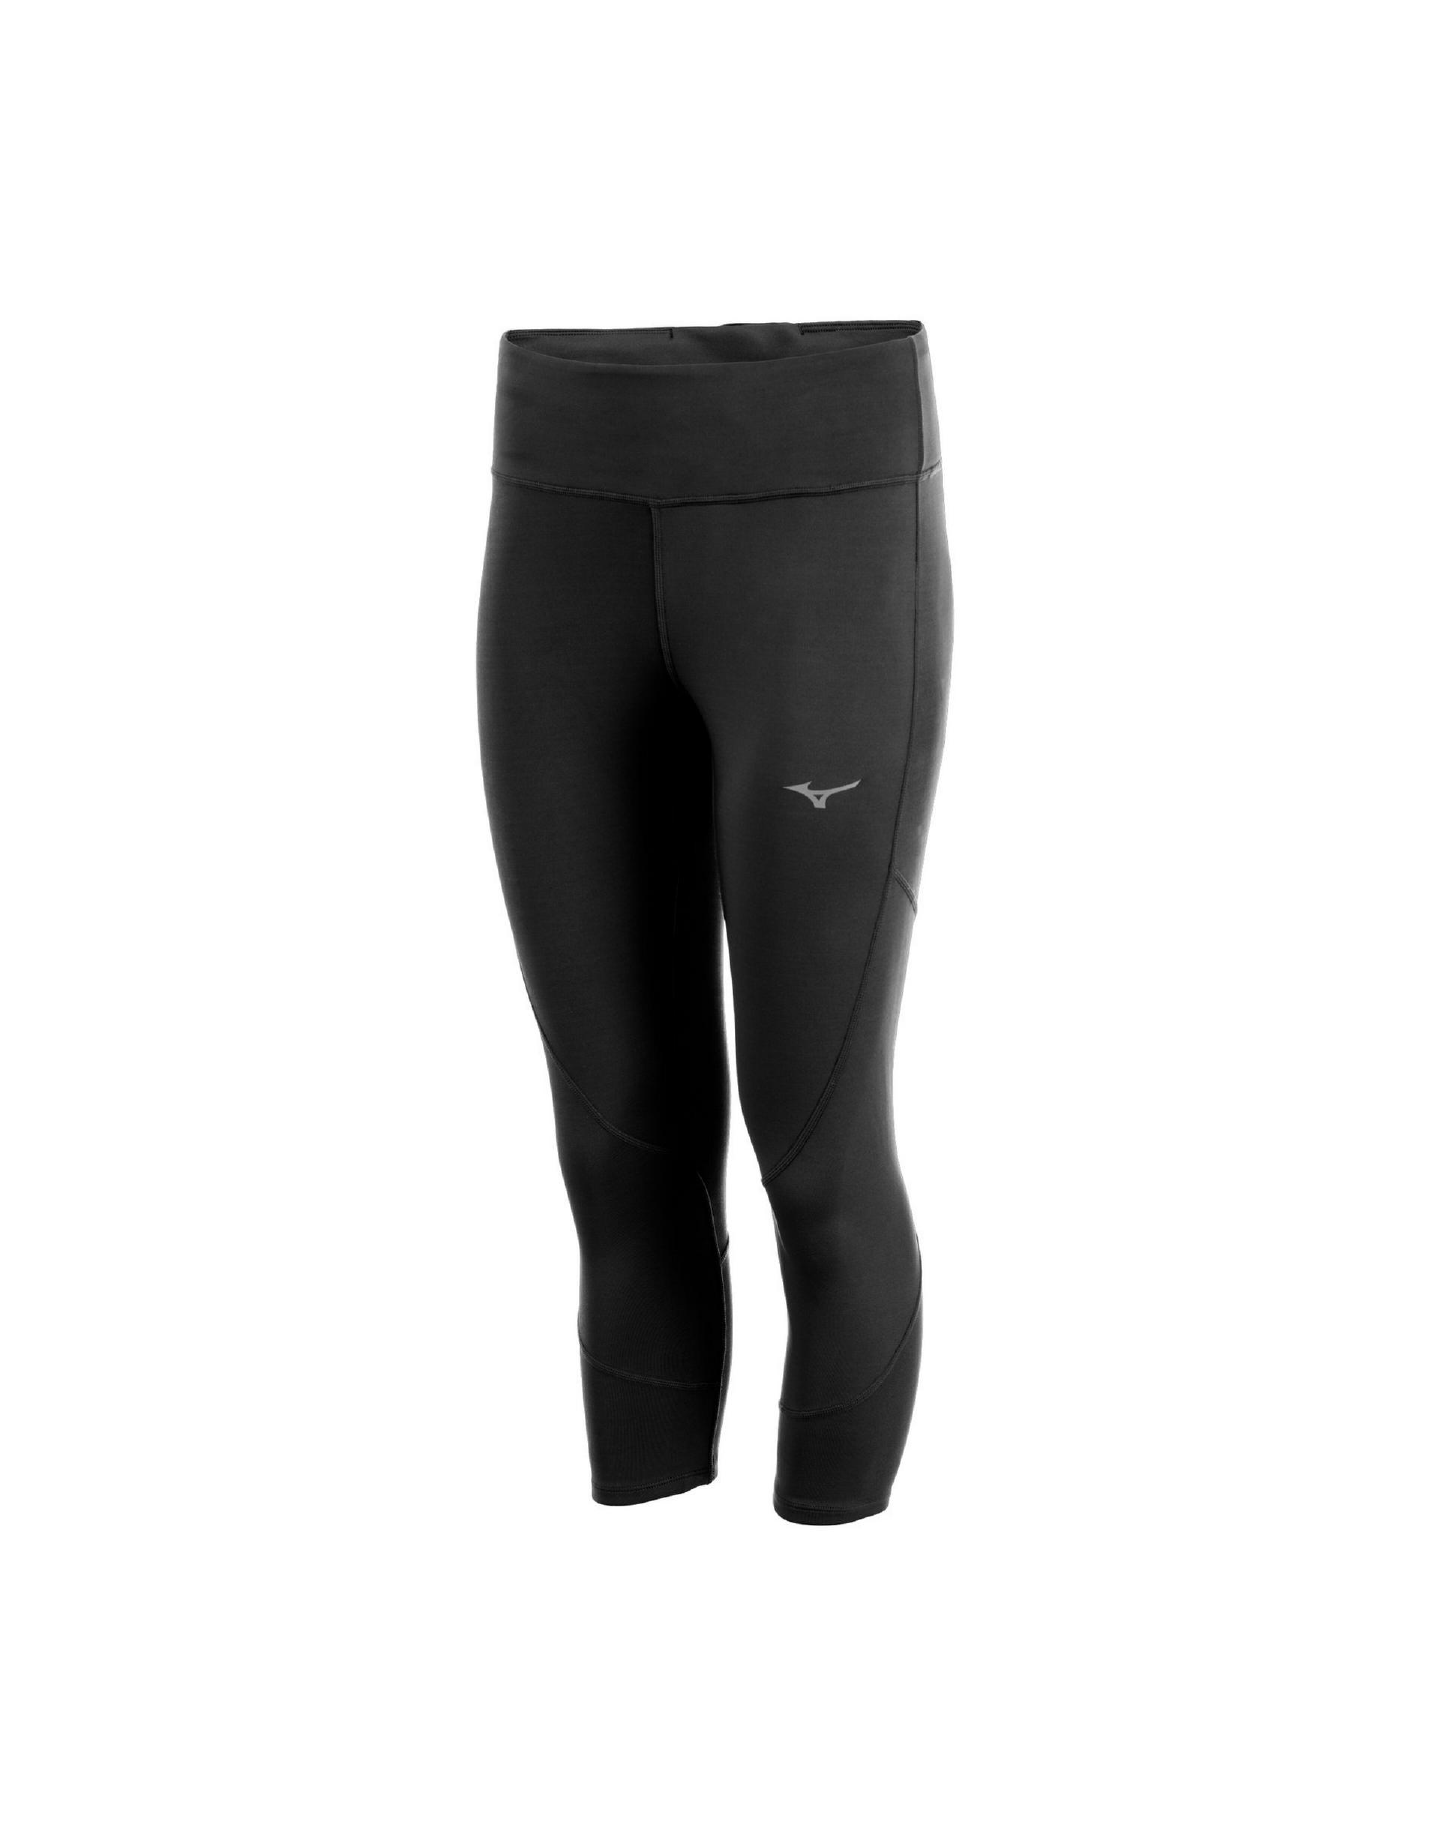 Mizuno Mizuno Impulse 3/4 Tight - Women